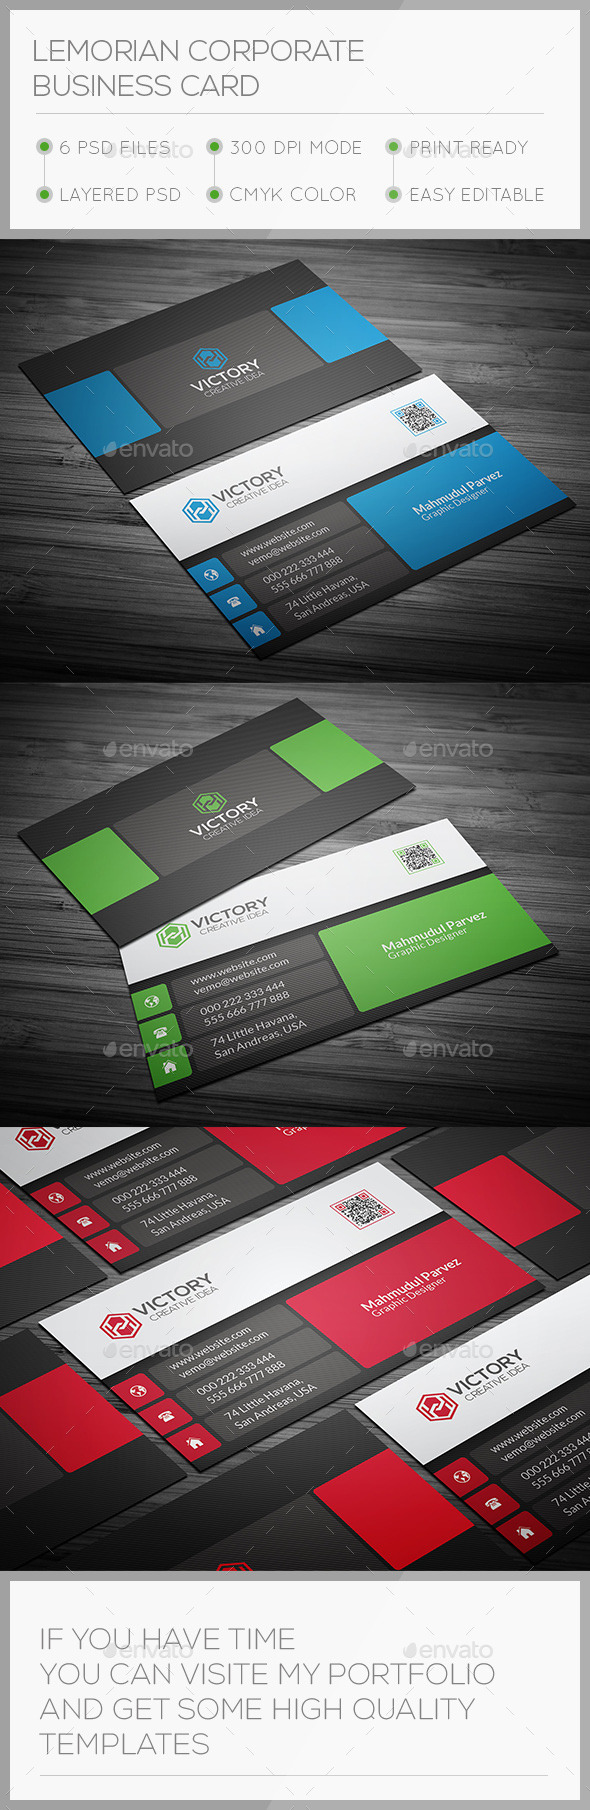 GraphicRiver Lemorian Corporate Business Card 11474607